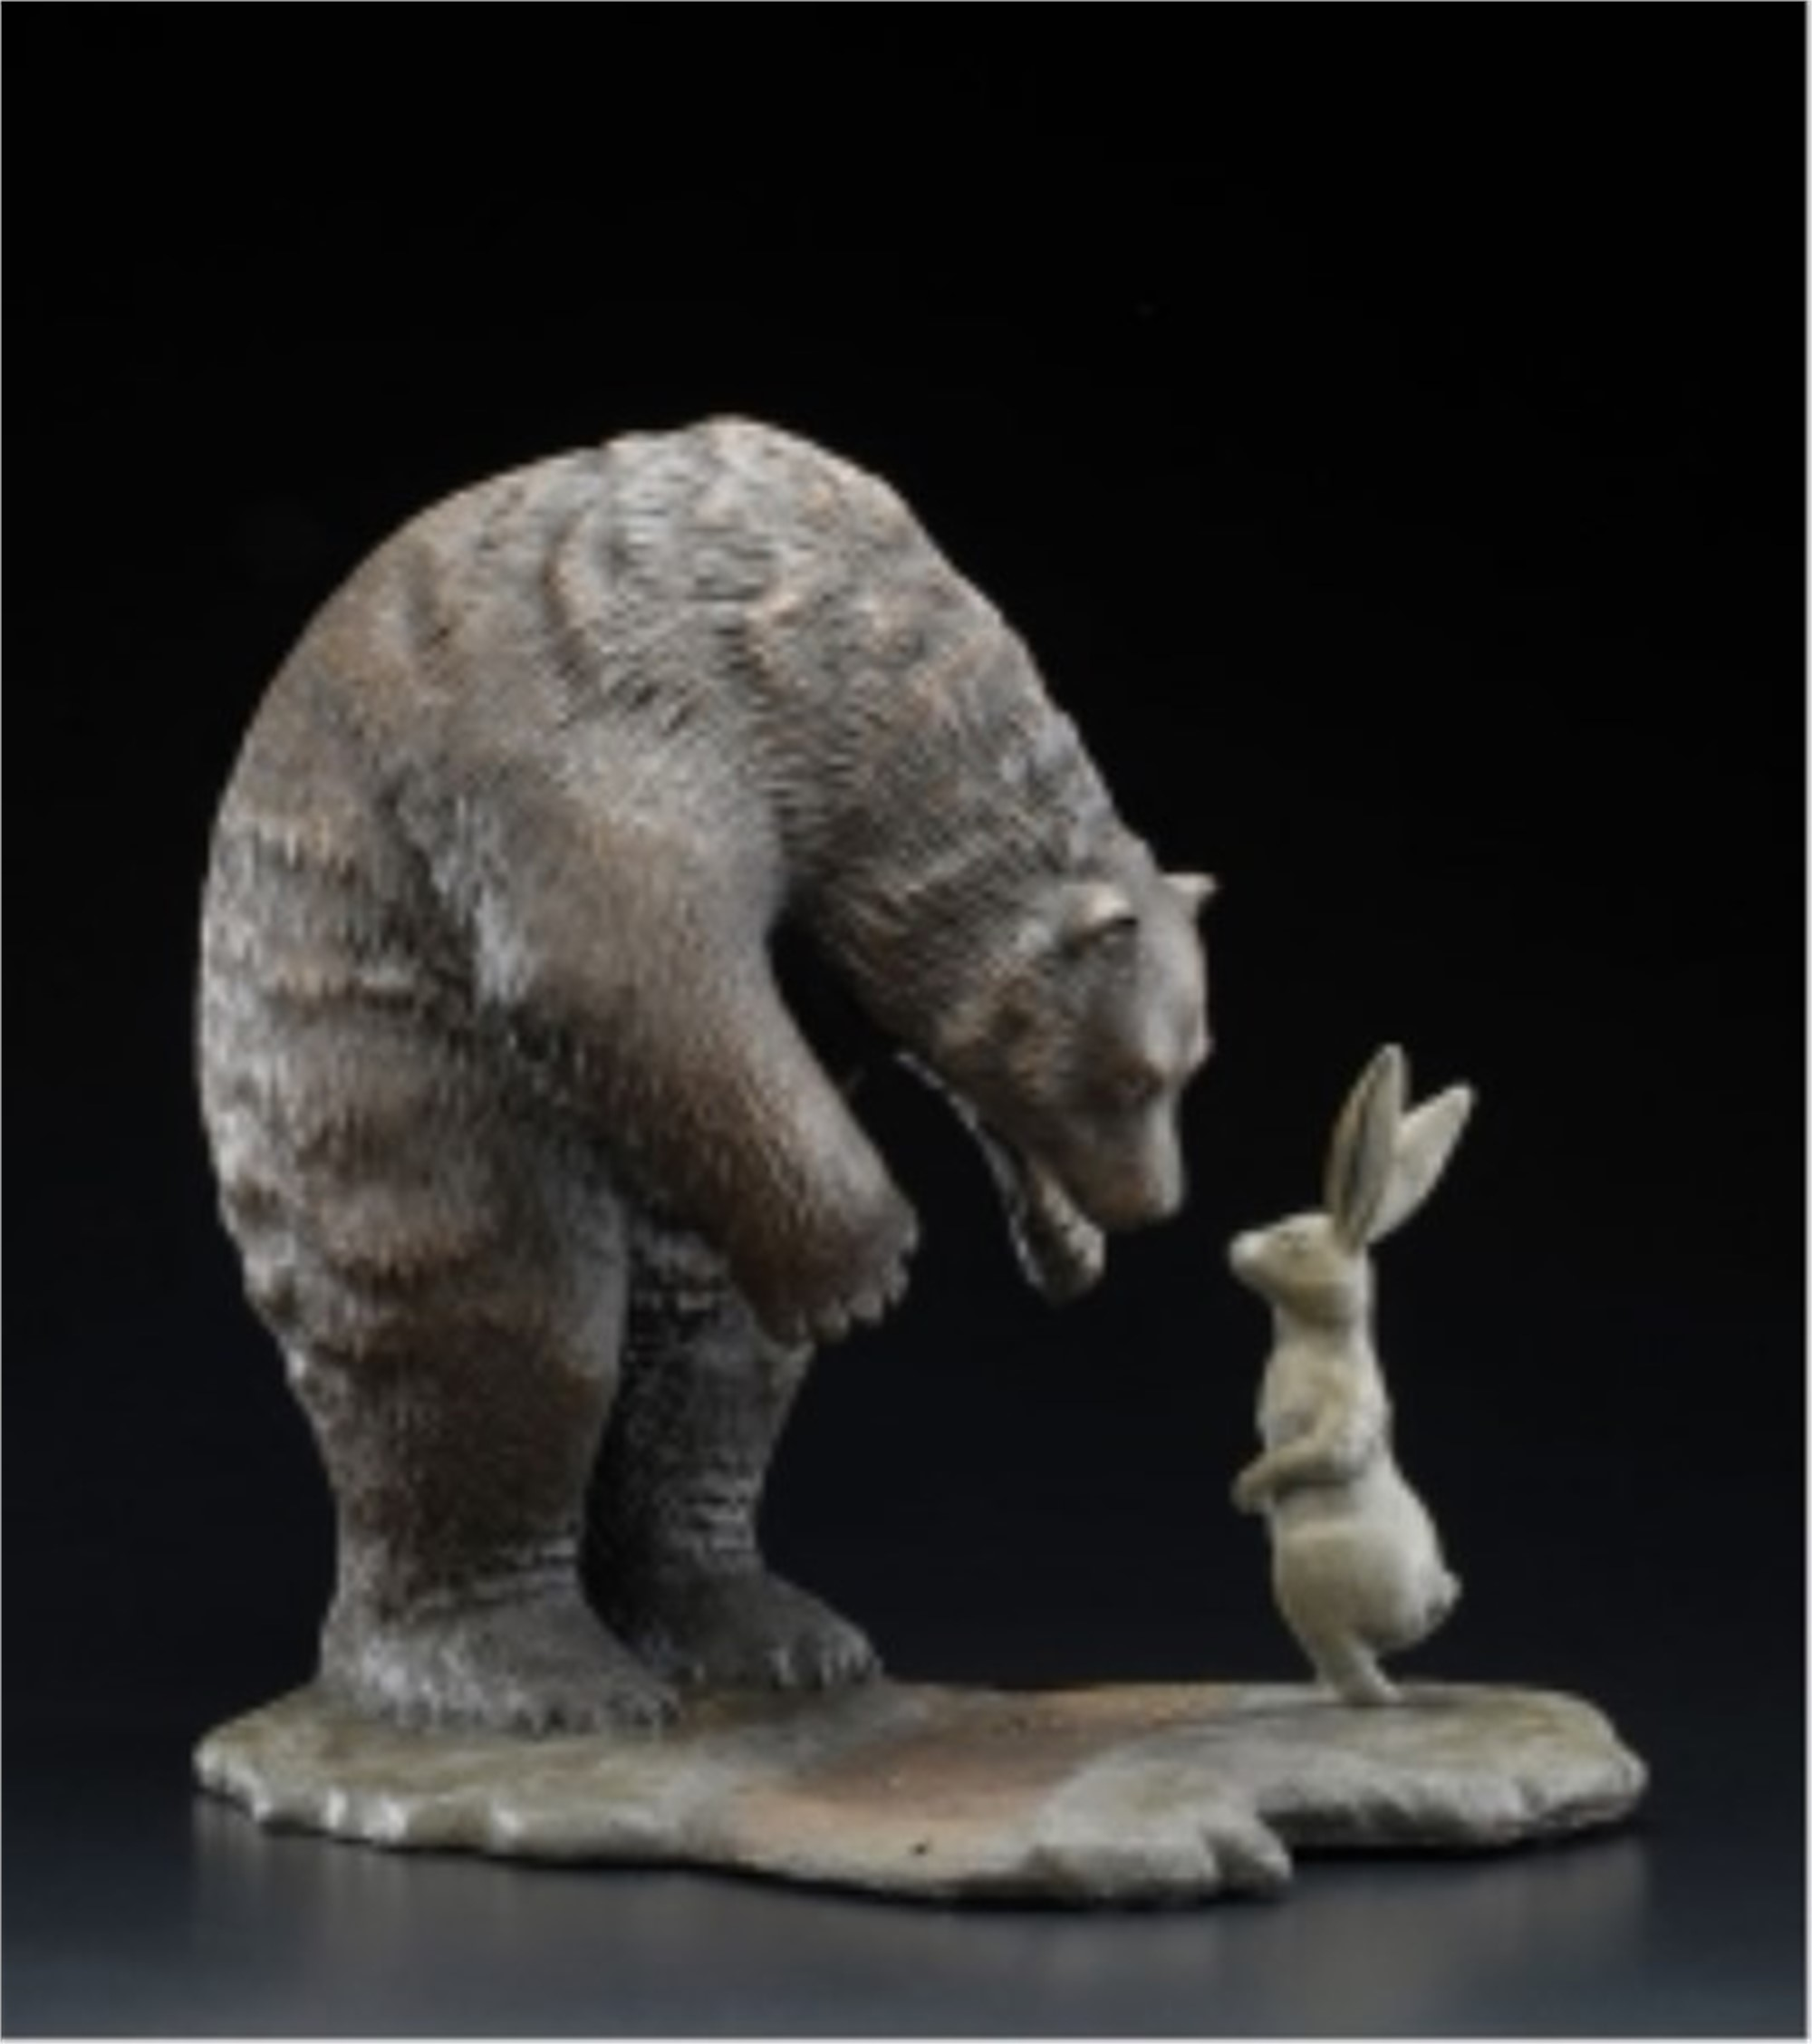 Exchange, The (Small Sculpture) by Robert Bissell